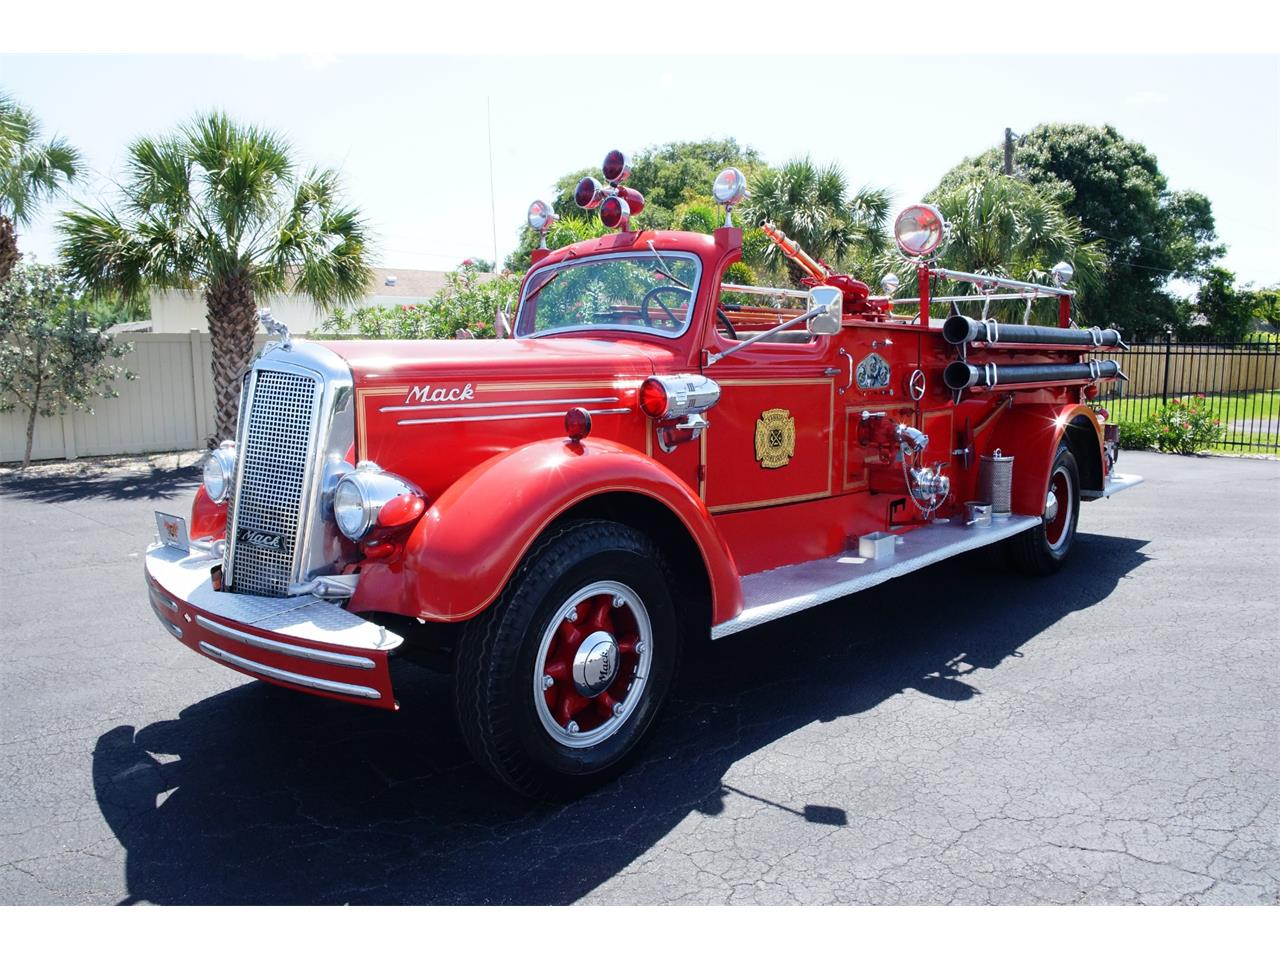 1943 Mack Fire Truck For Sale